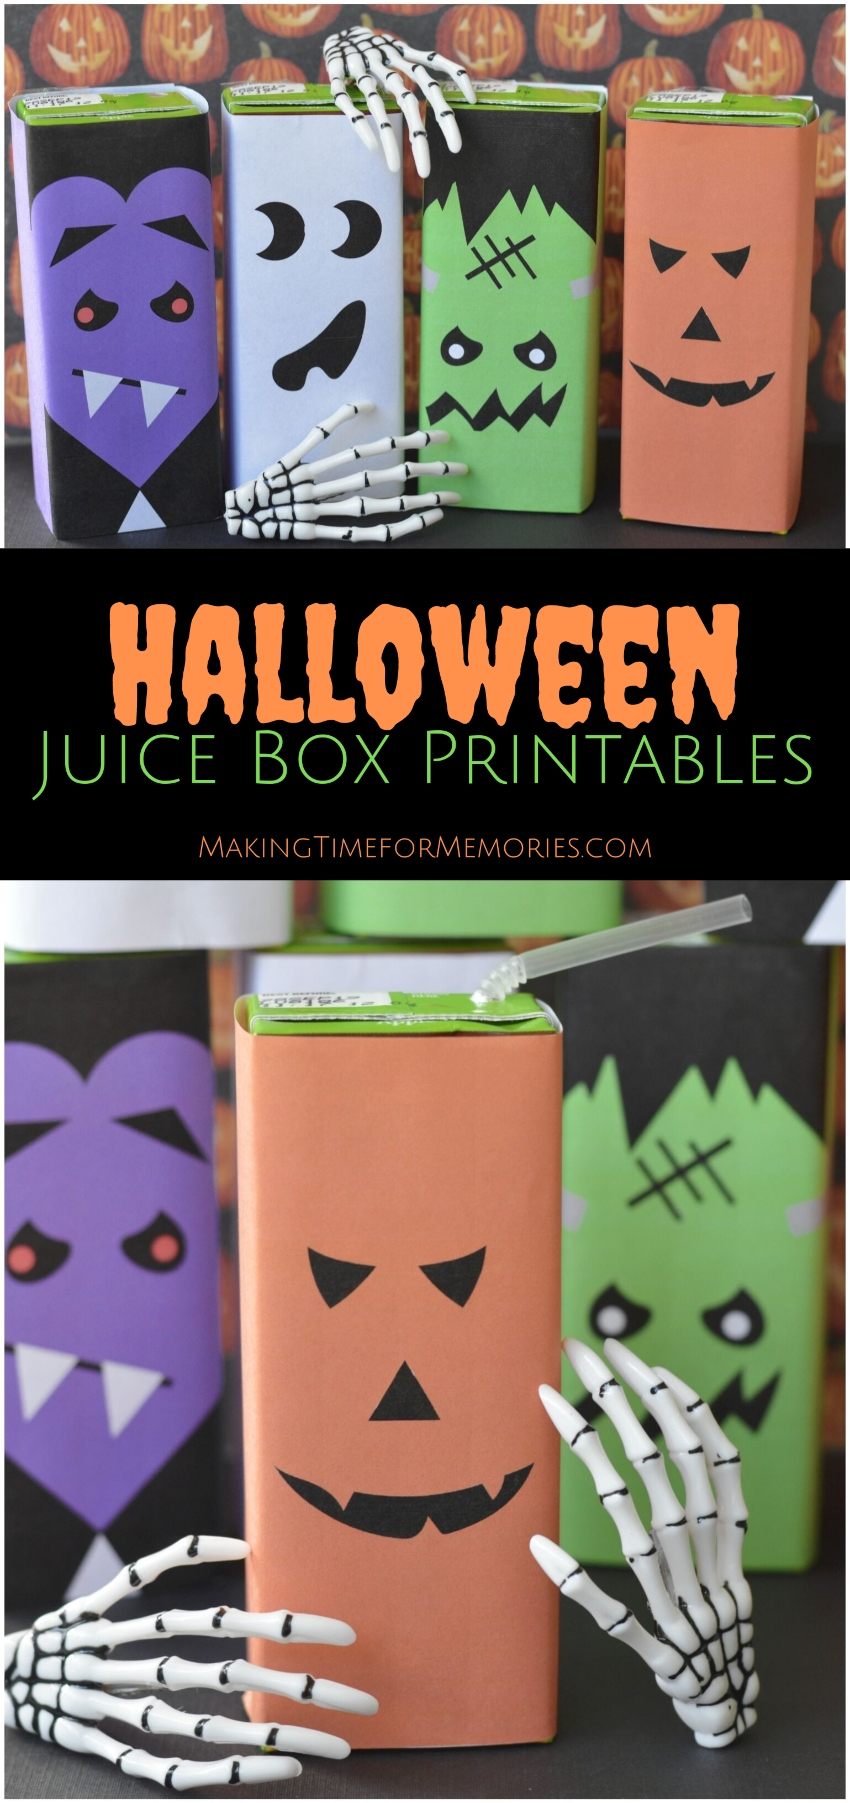 Halloween Juice Box Printables | #Halloween #freeprintable #HalloweenTreat